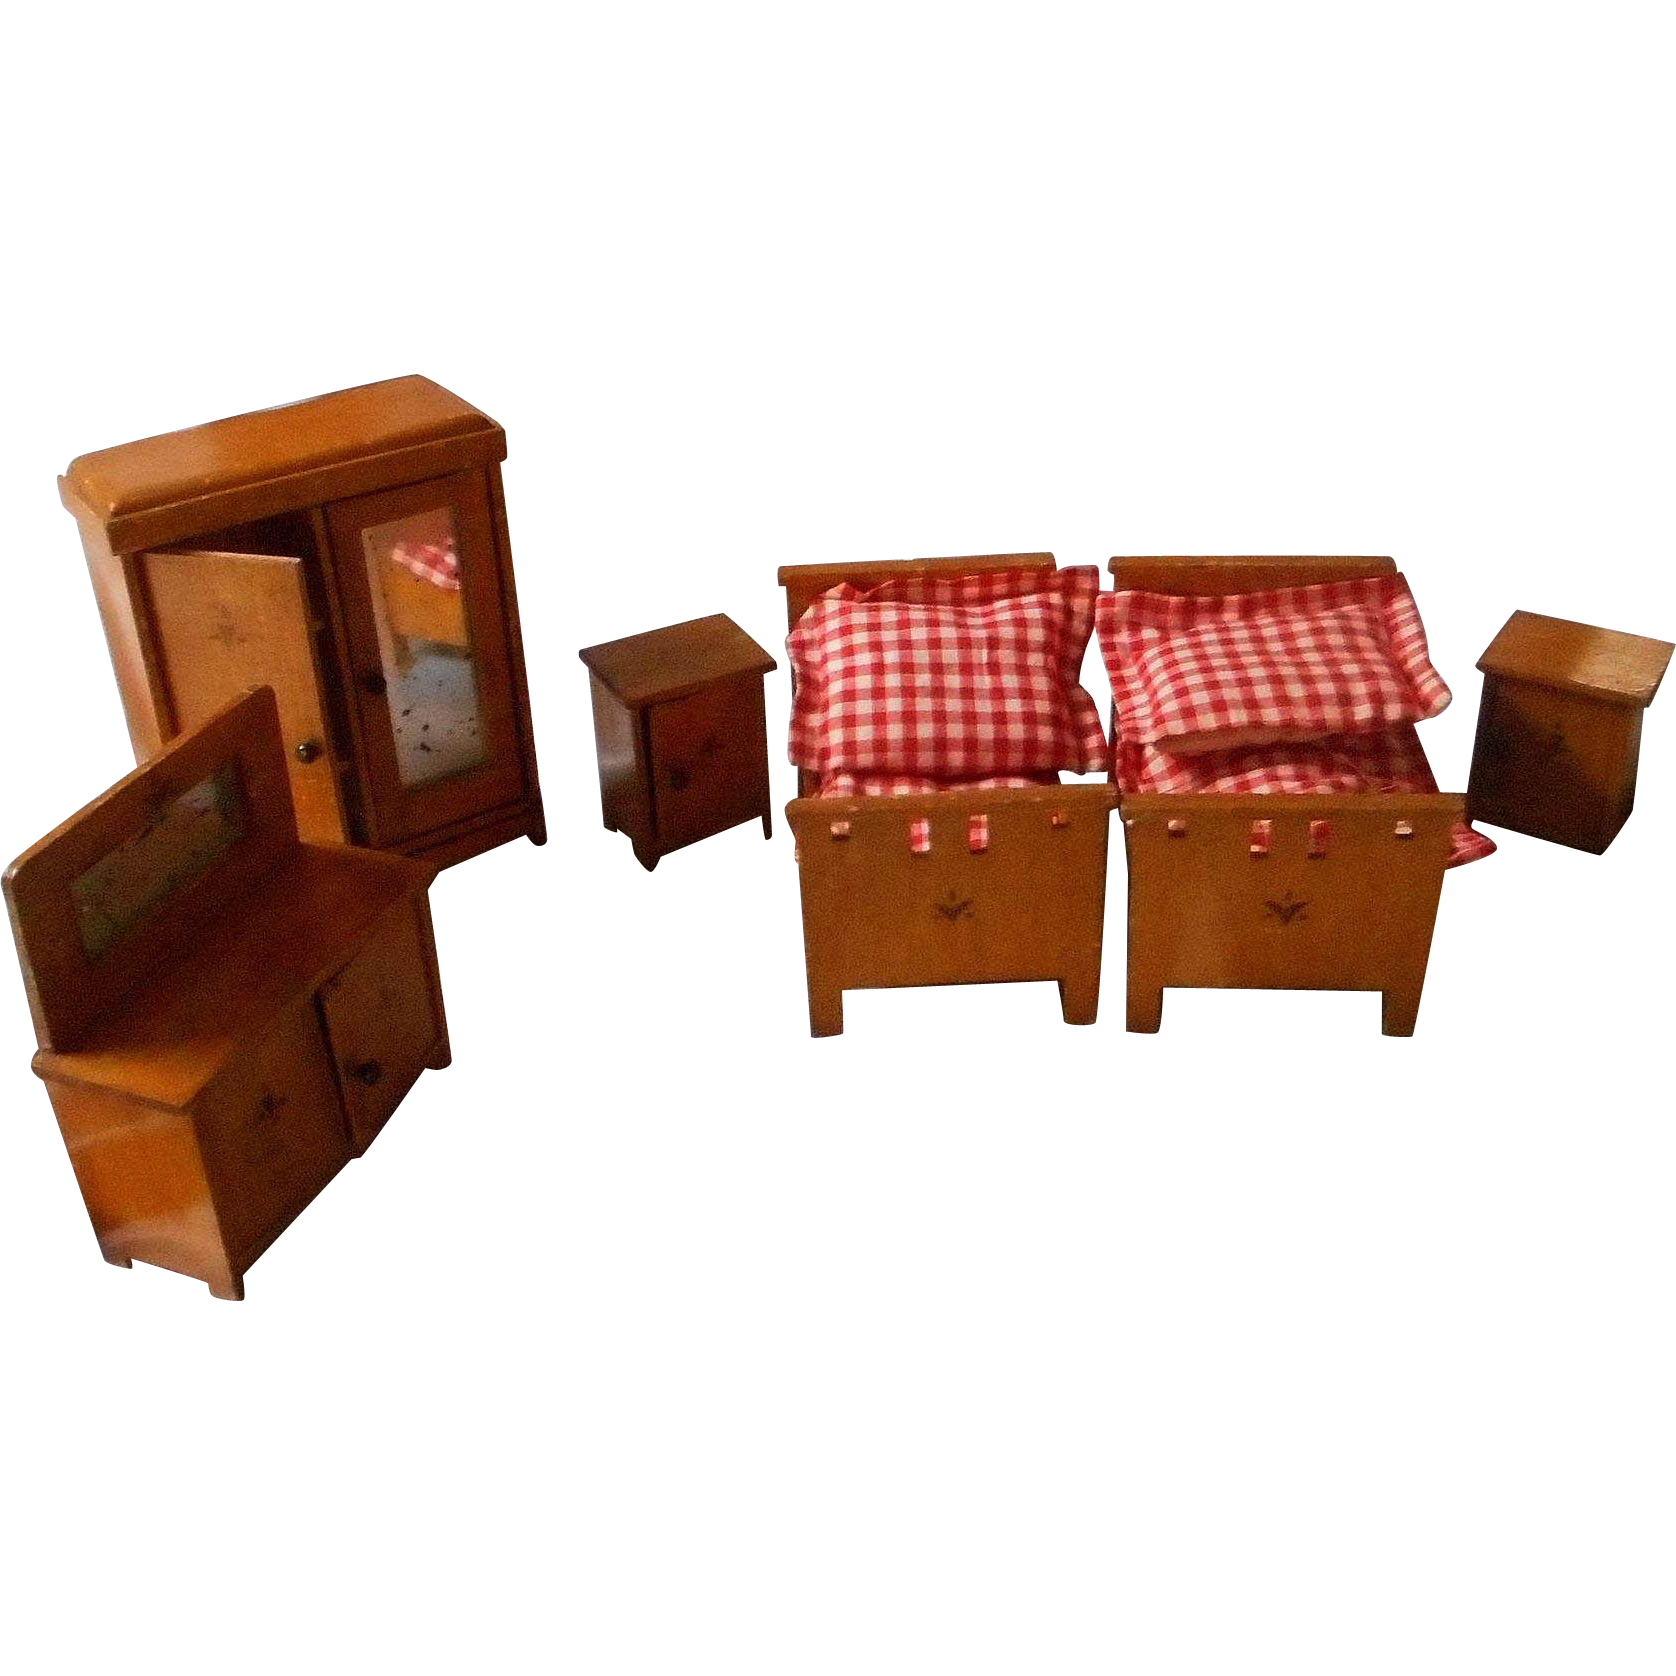 German Vintage All Wooden Doll House Bedroom Set From